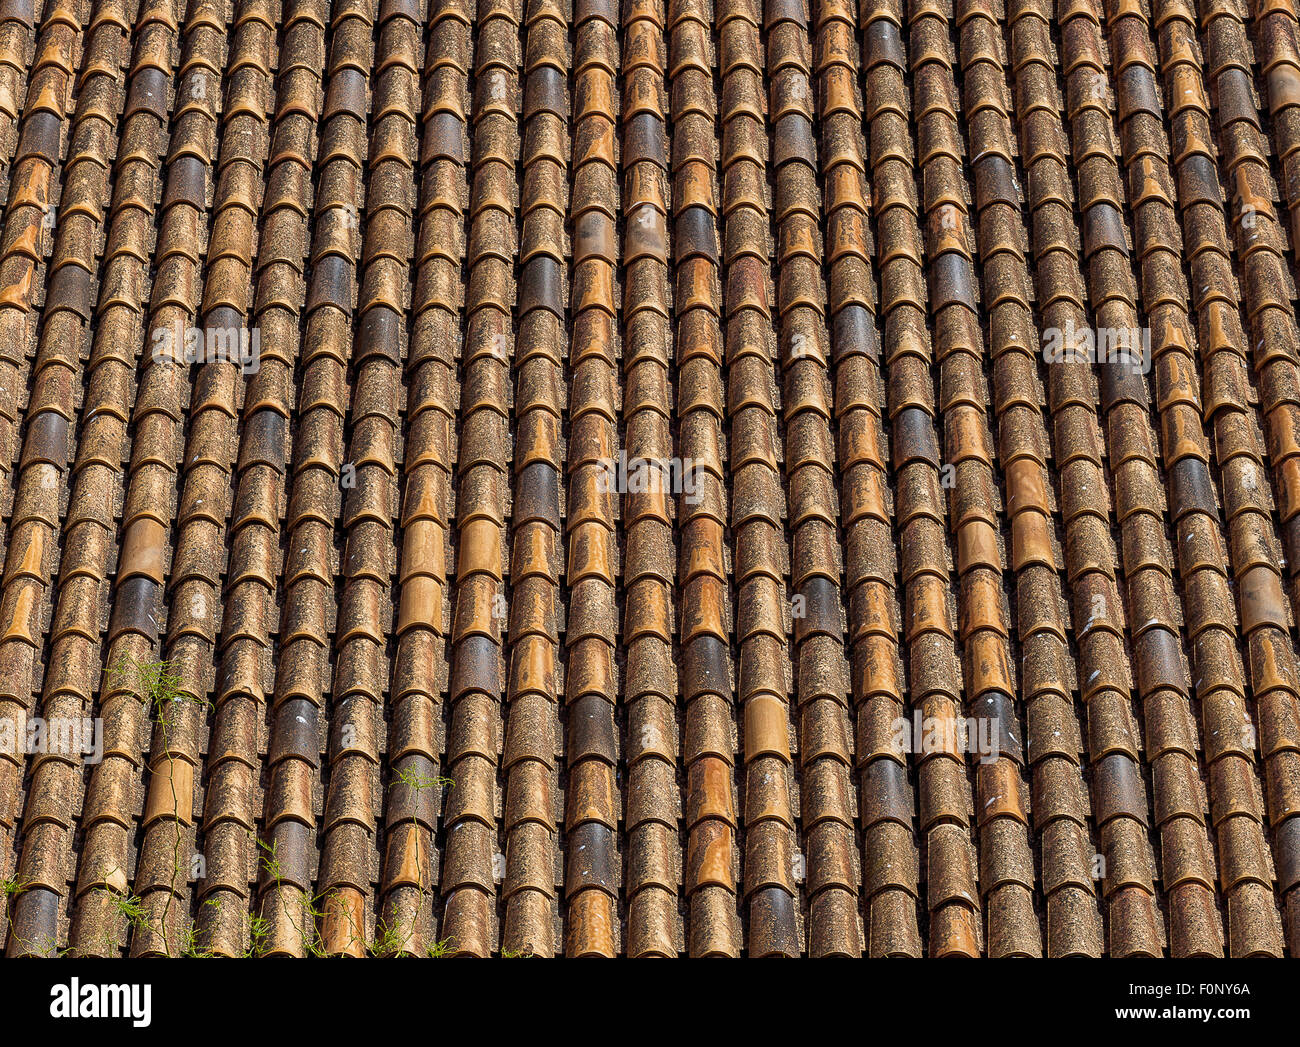 Spanish Terracotta Roof Tiles Typical Spanish Roof Covered In S Style  Terracotta Clay Roof Tiles